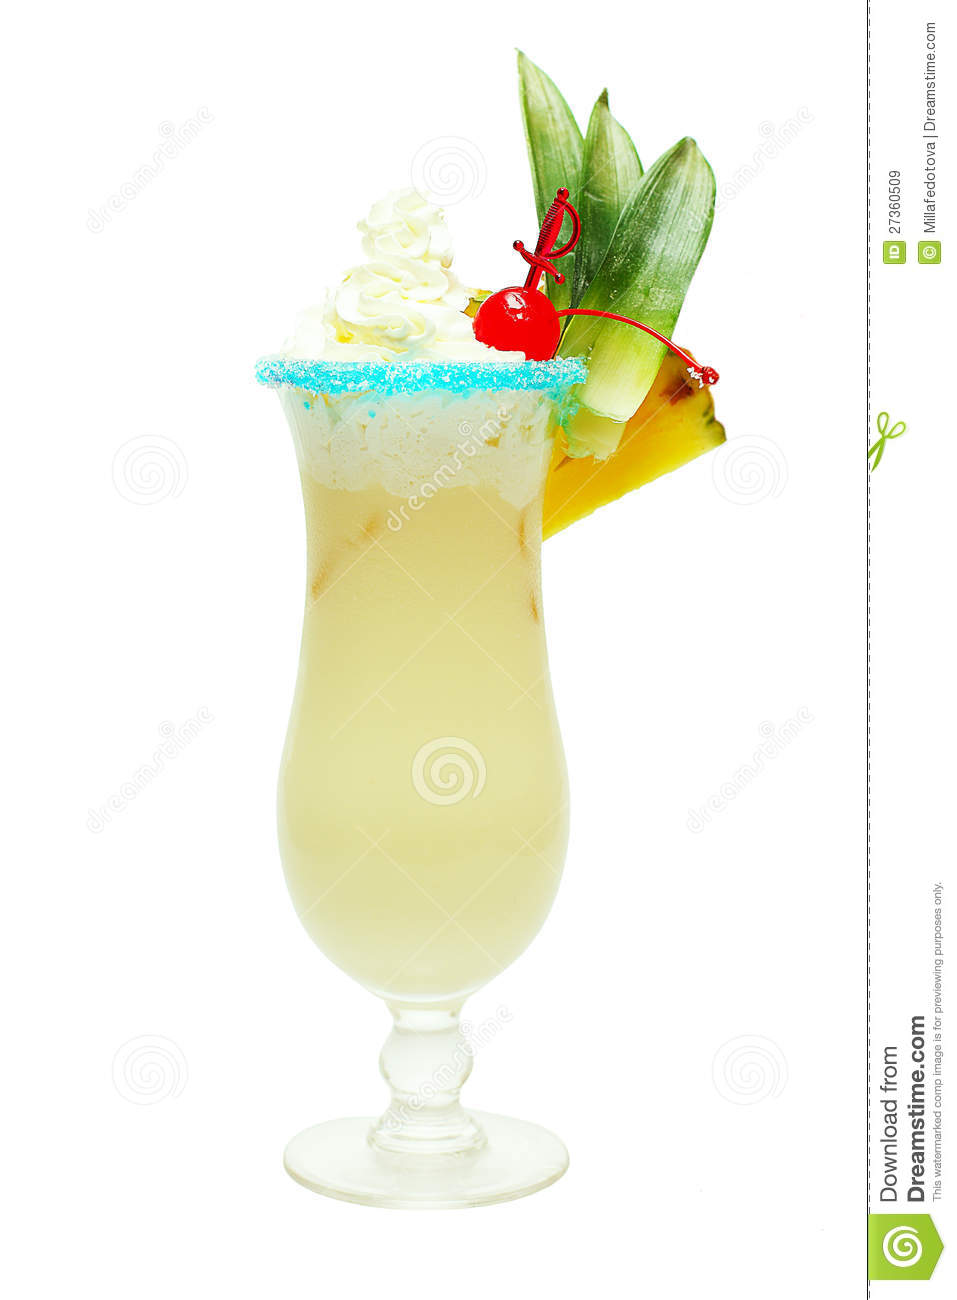 Pina colada cocktail royalty free stock images image for Cocktail pina colada